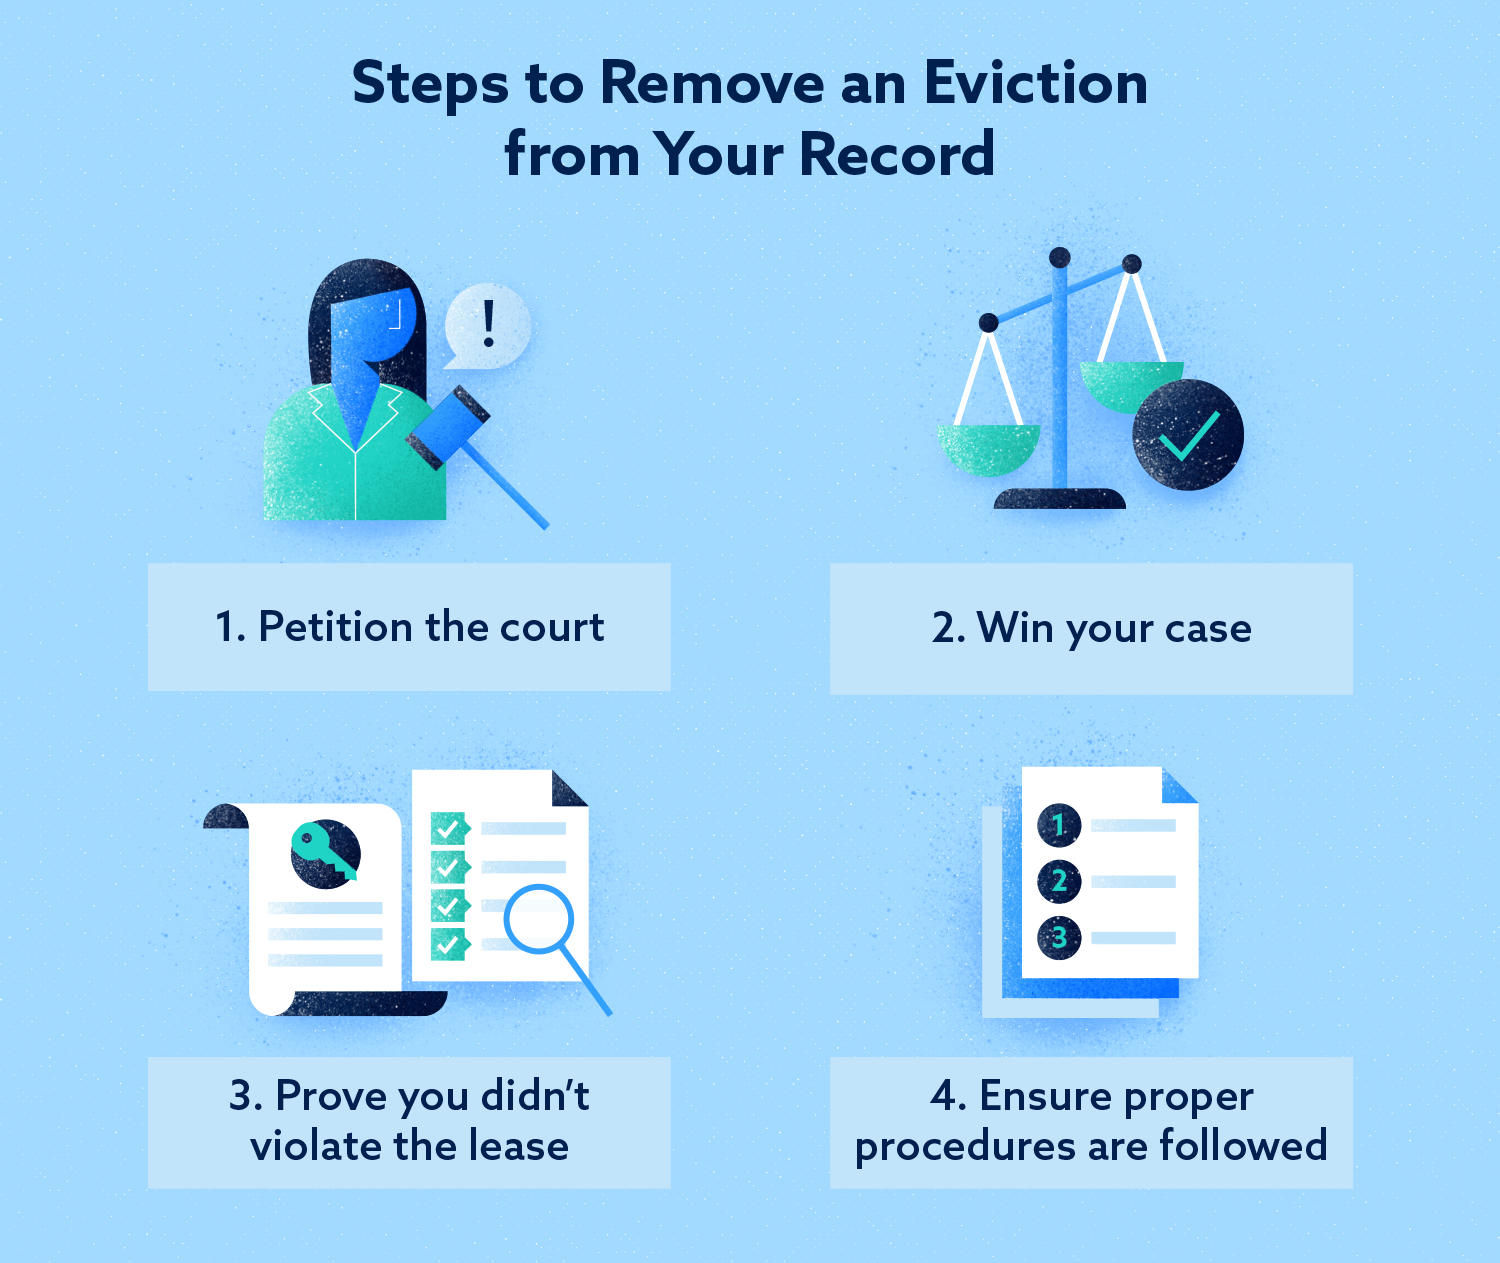 Steps to Remove an Eviction from Your Record Image